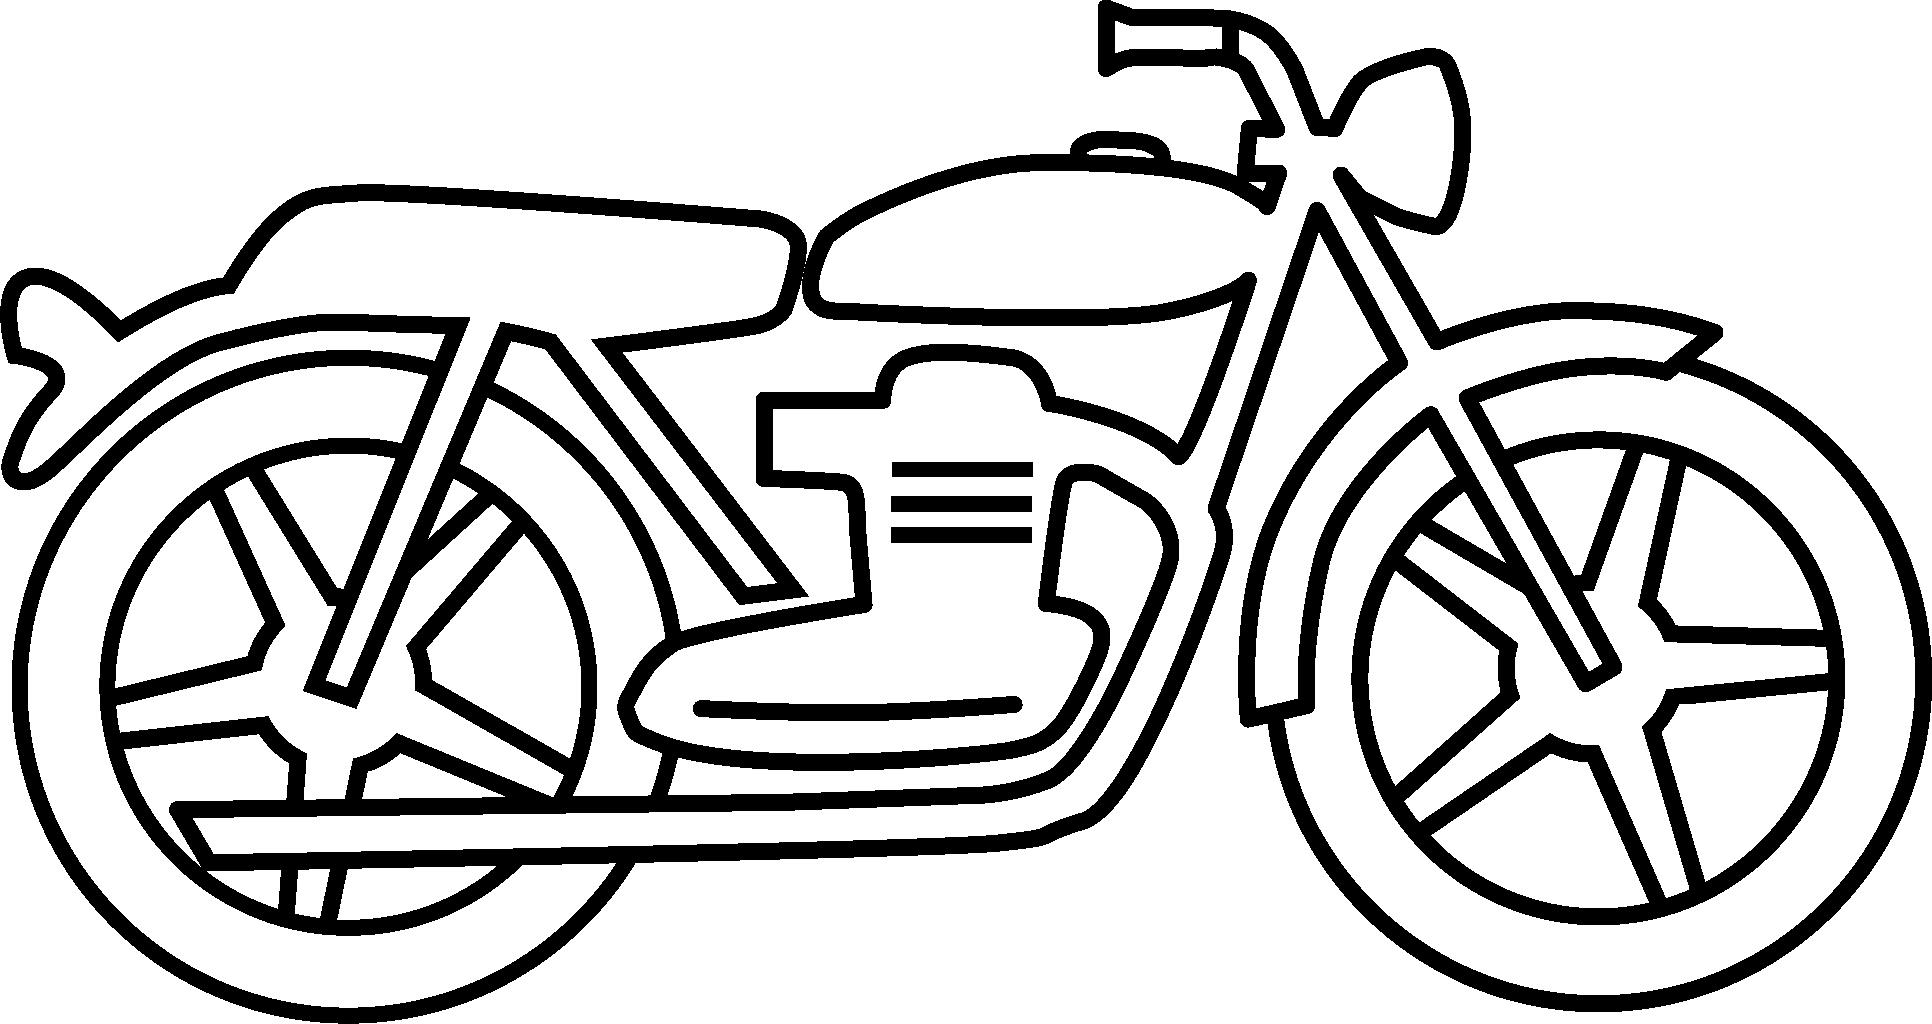 Motorcycle Cliparts Harley Davidson | Free download best ... for Harley Motorcycle Clipart  111ane